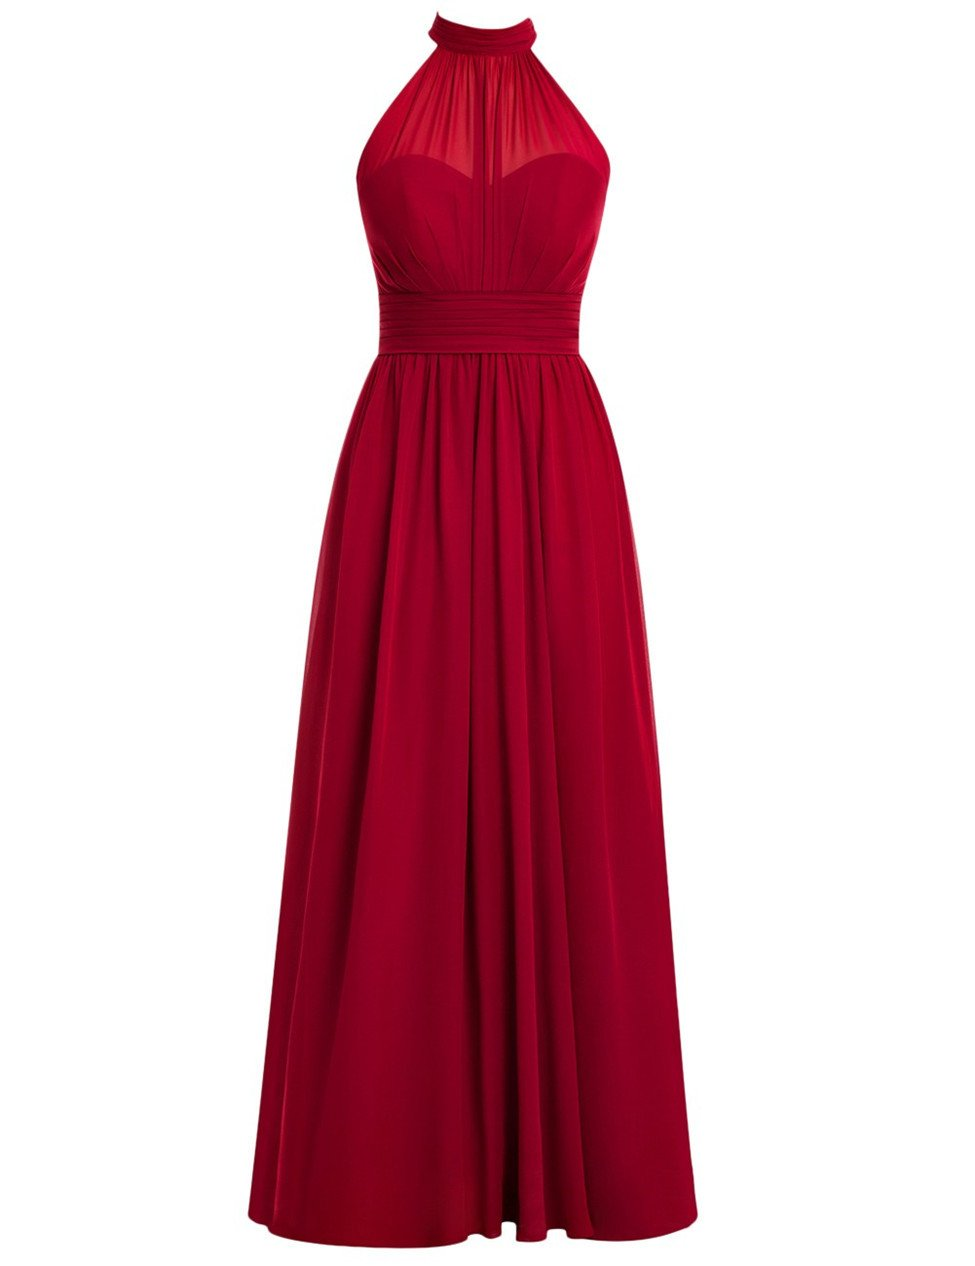 High neck evening dresssimple aline floor length burgundy prom